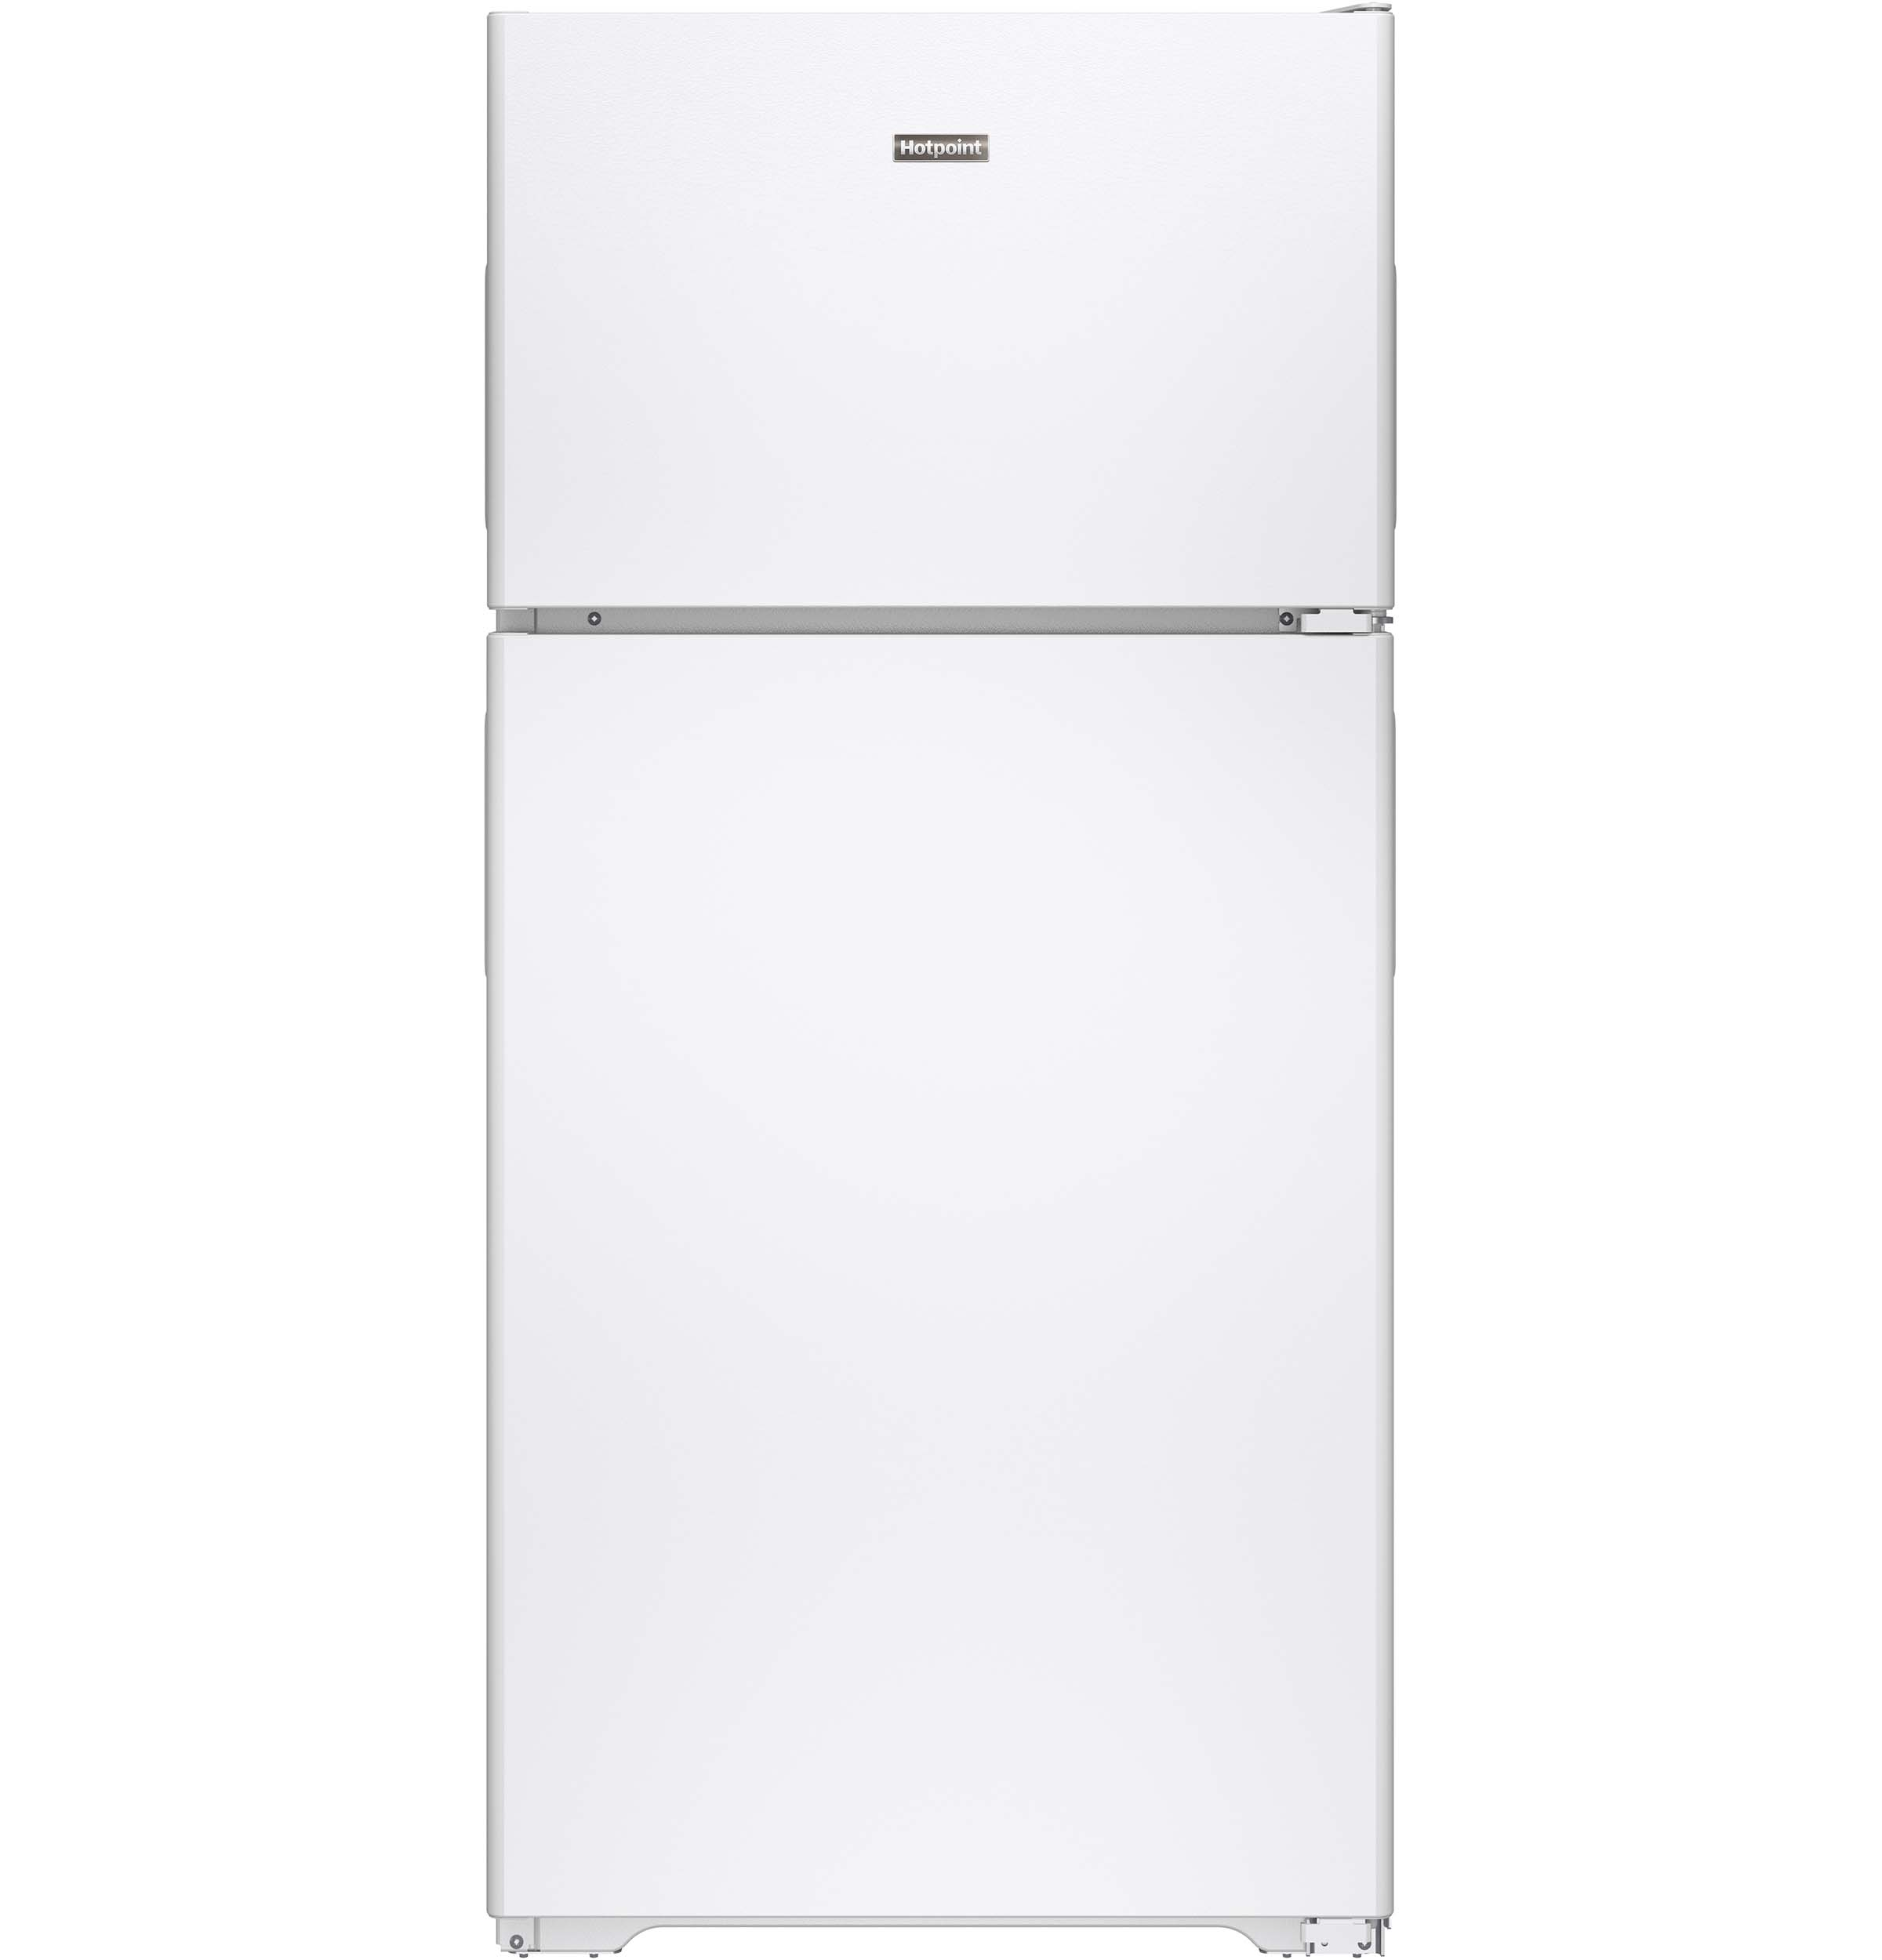 Hotpoint® ENERGY STAR® 14.6 Cu. Ft. Recessed Handle Top-Freezer Refrigerator